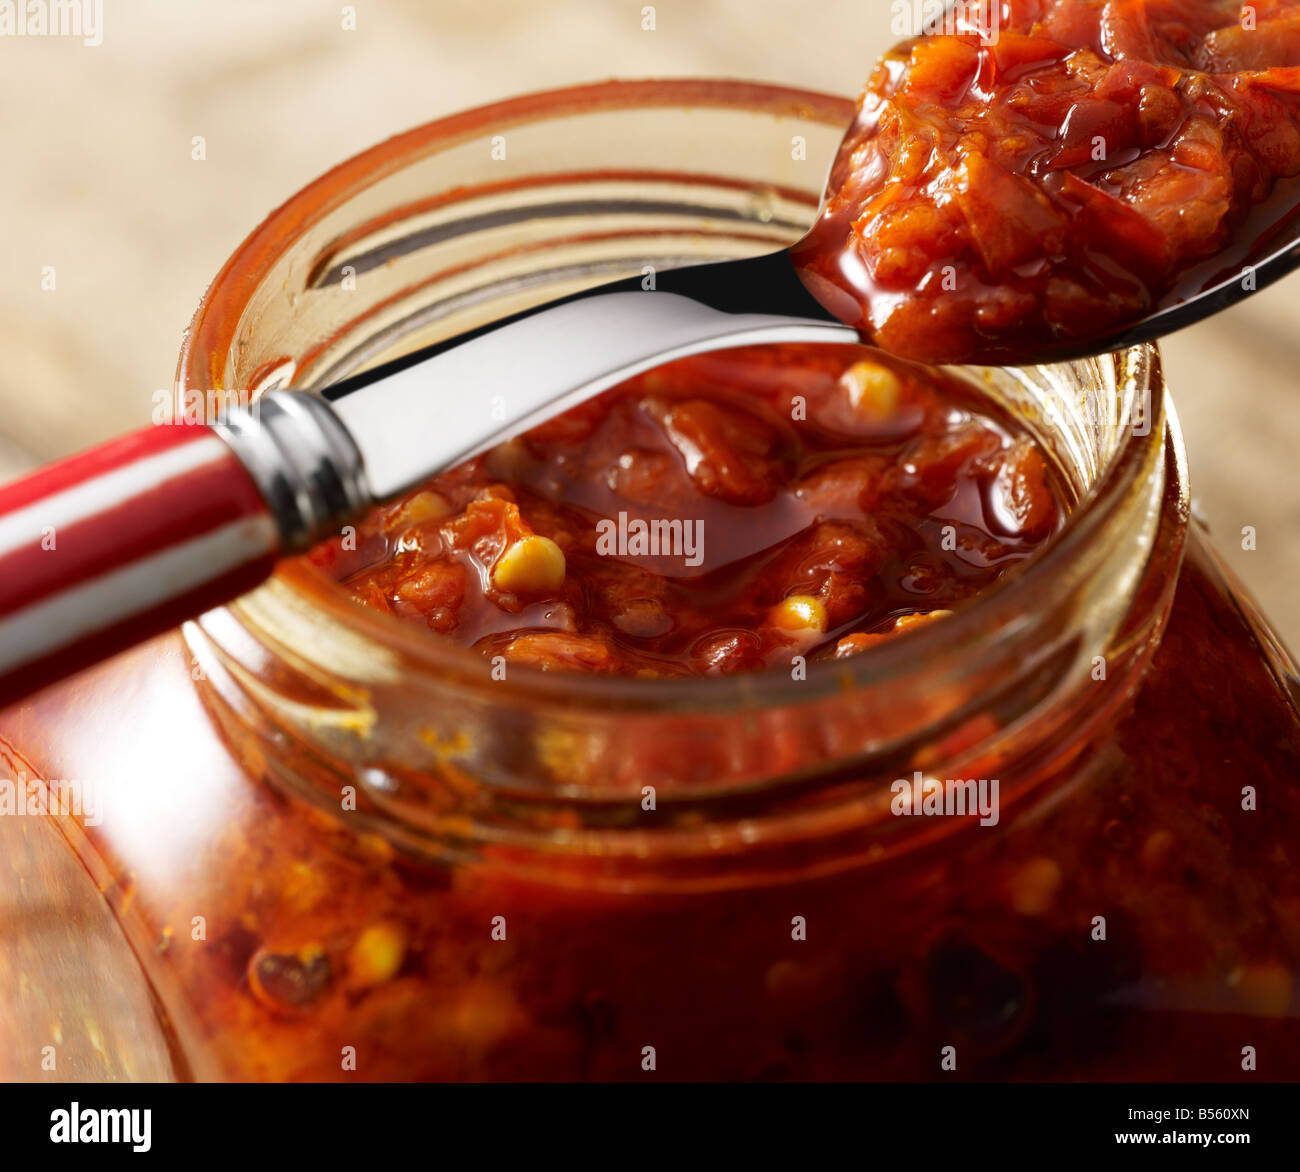 A spoon on a jar of hot Chilli sauce - Stock Image